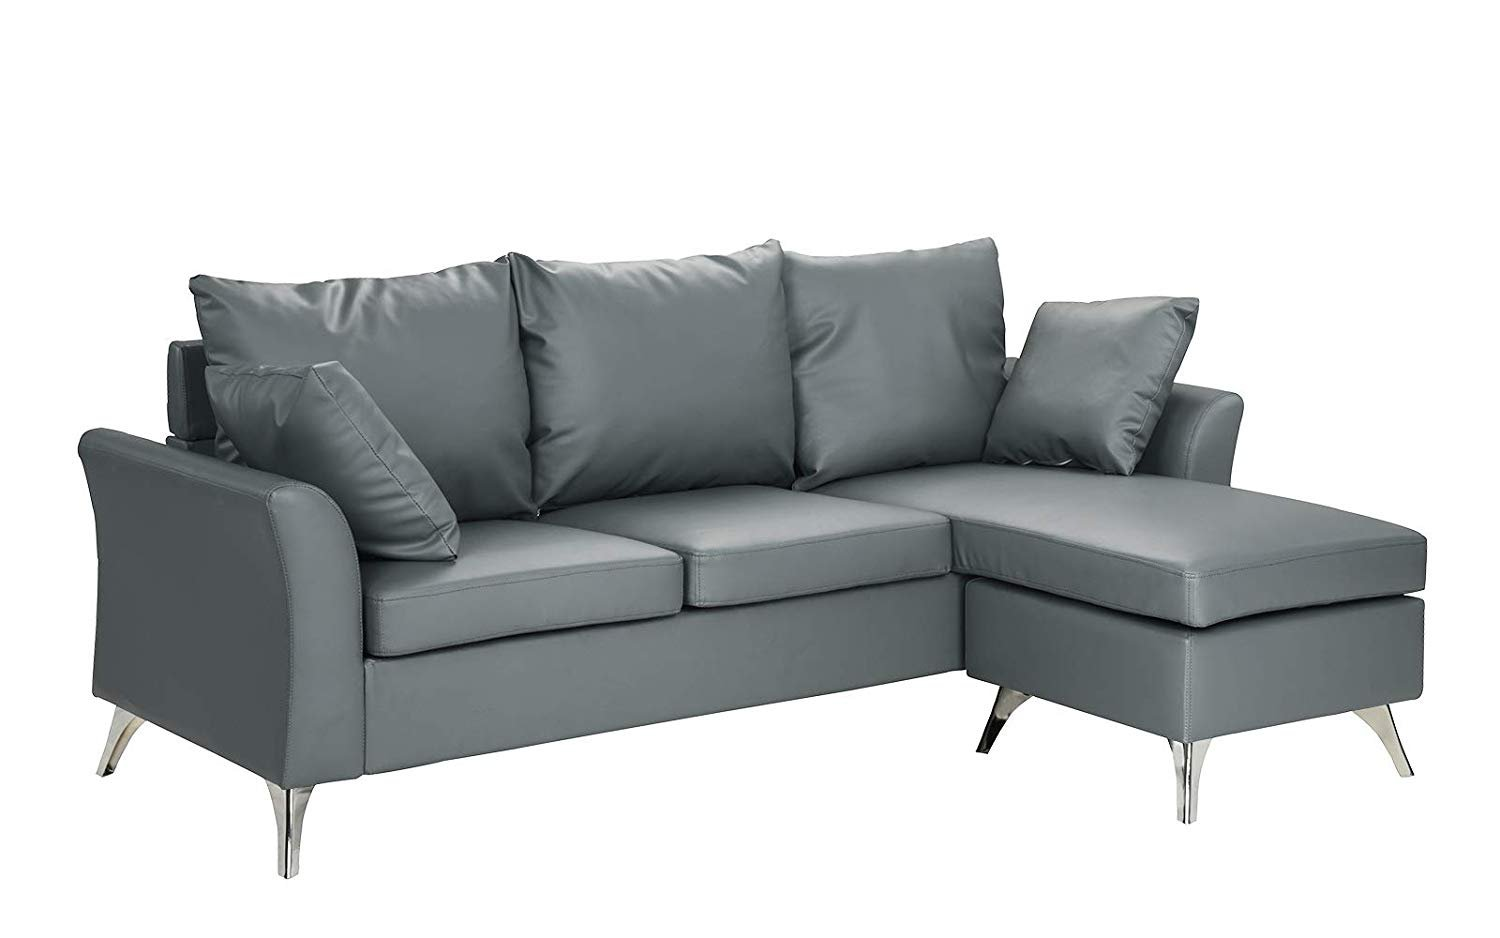 Details about Modern PU Leather Sectional Sofa, Configurable Small Space  Couch, Light Grey